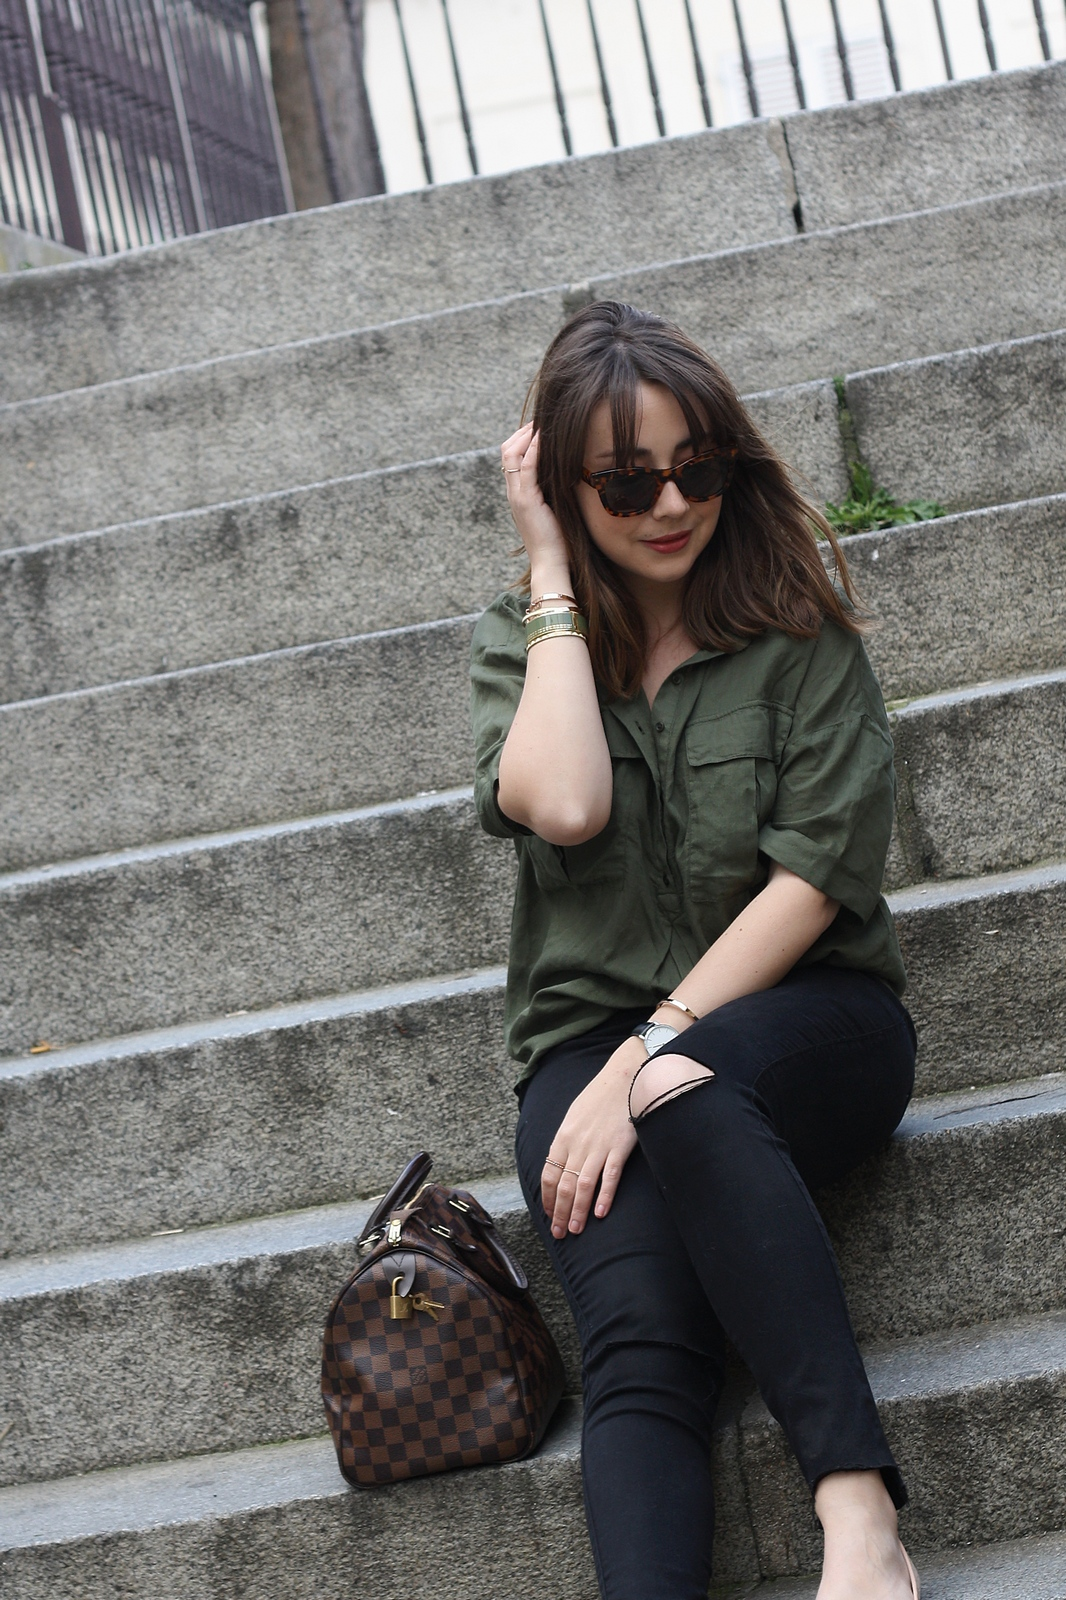 du style madame - blog mode - urban safari - stretstyle